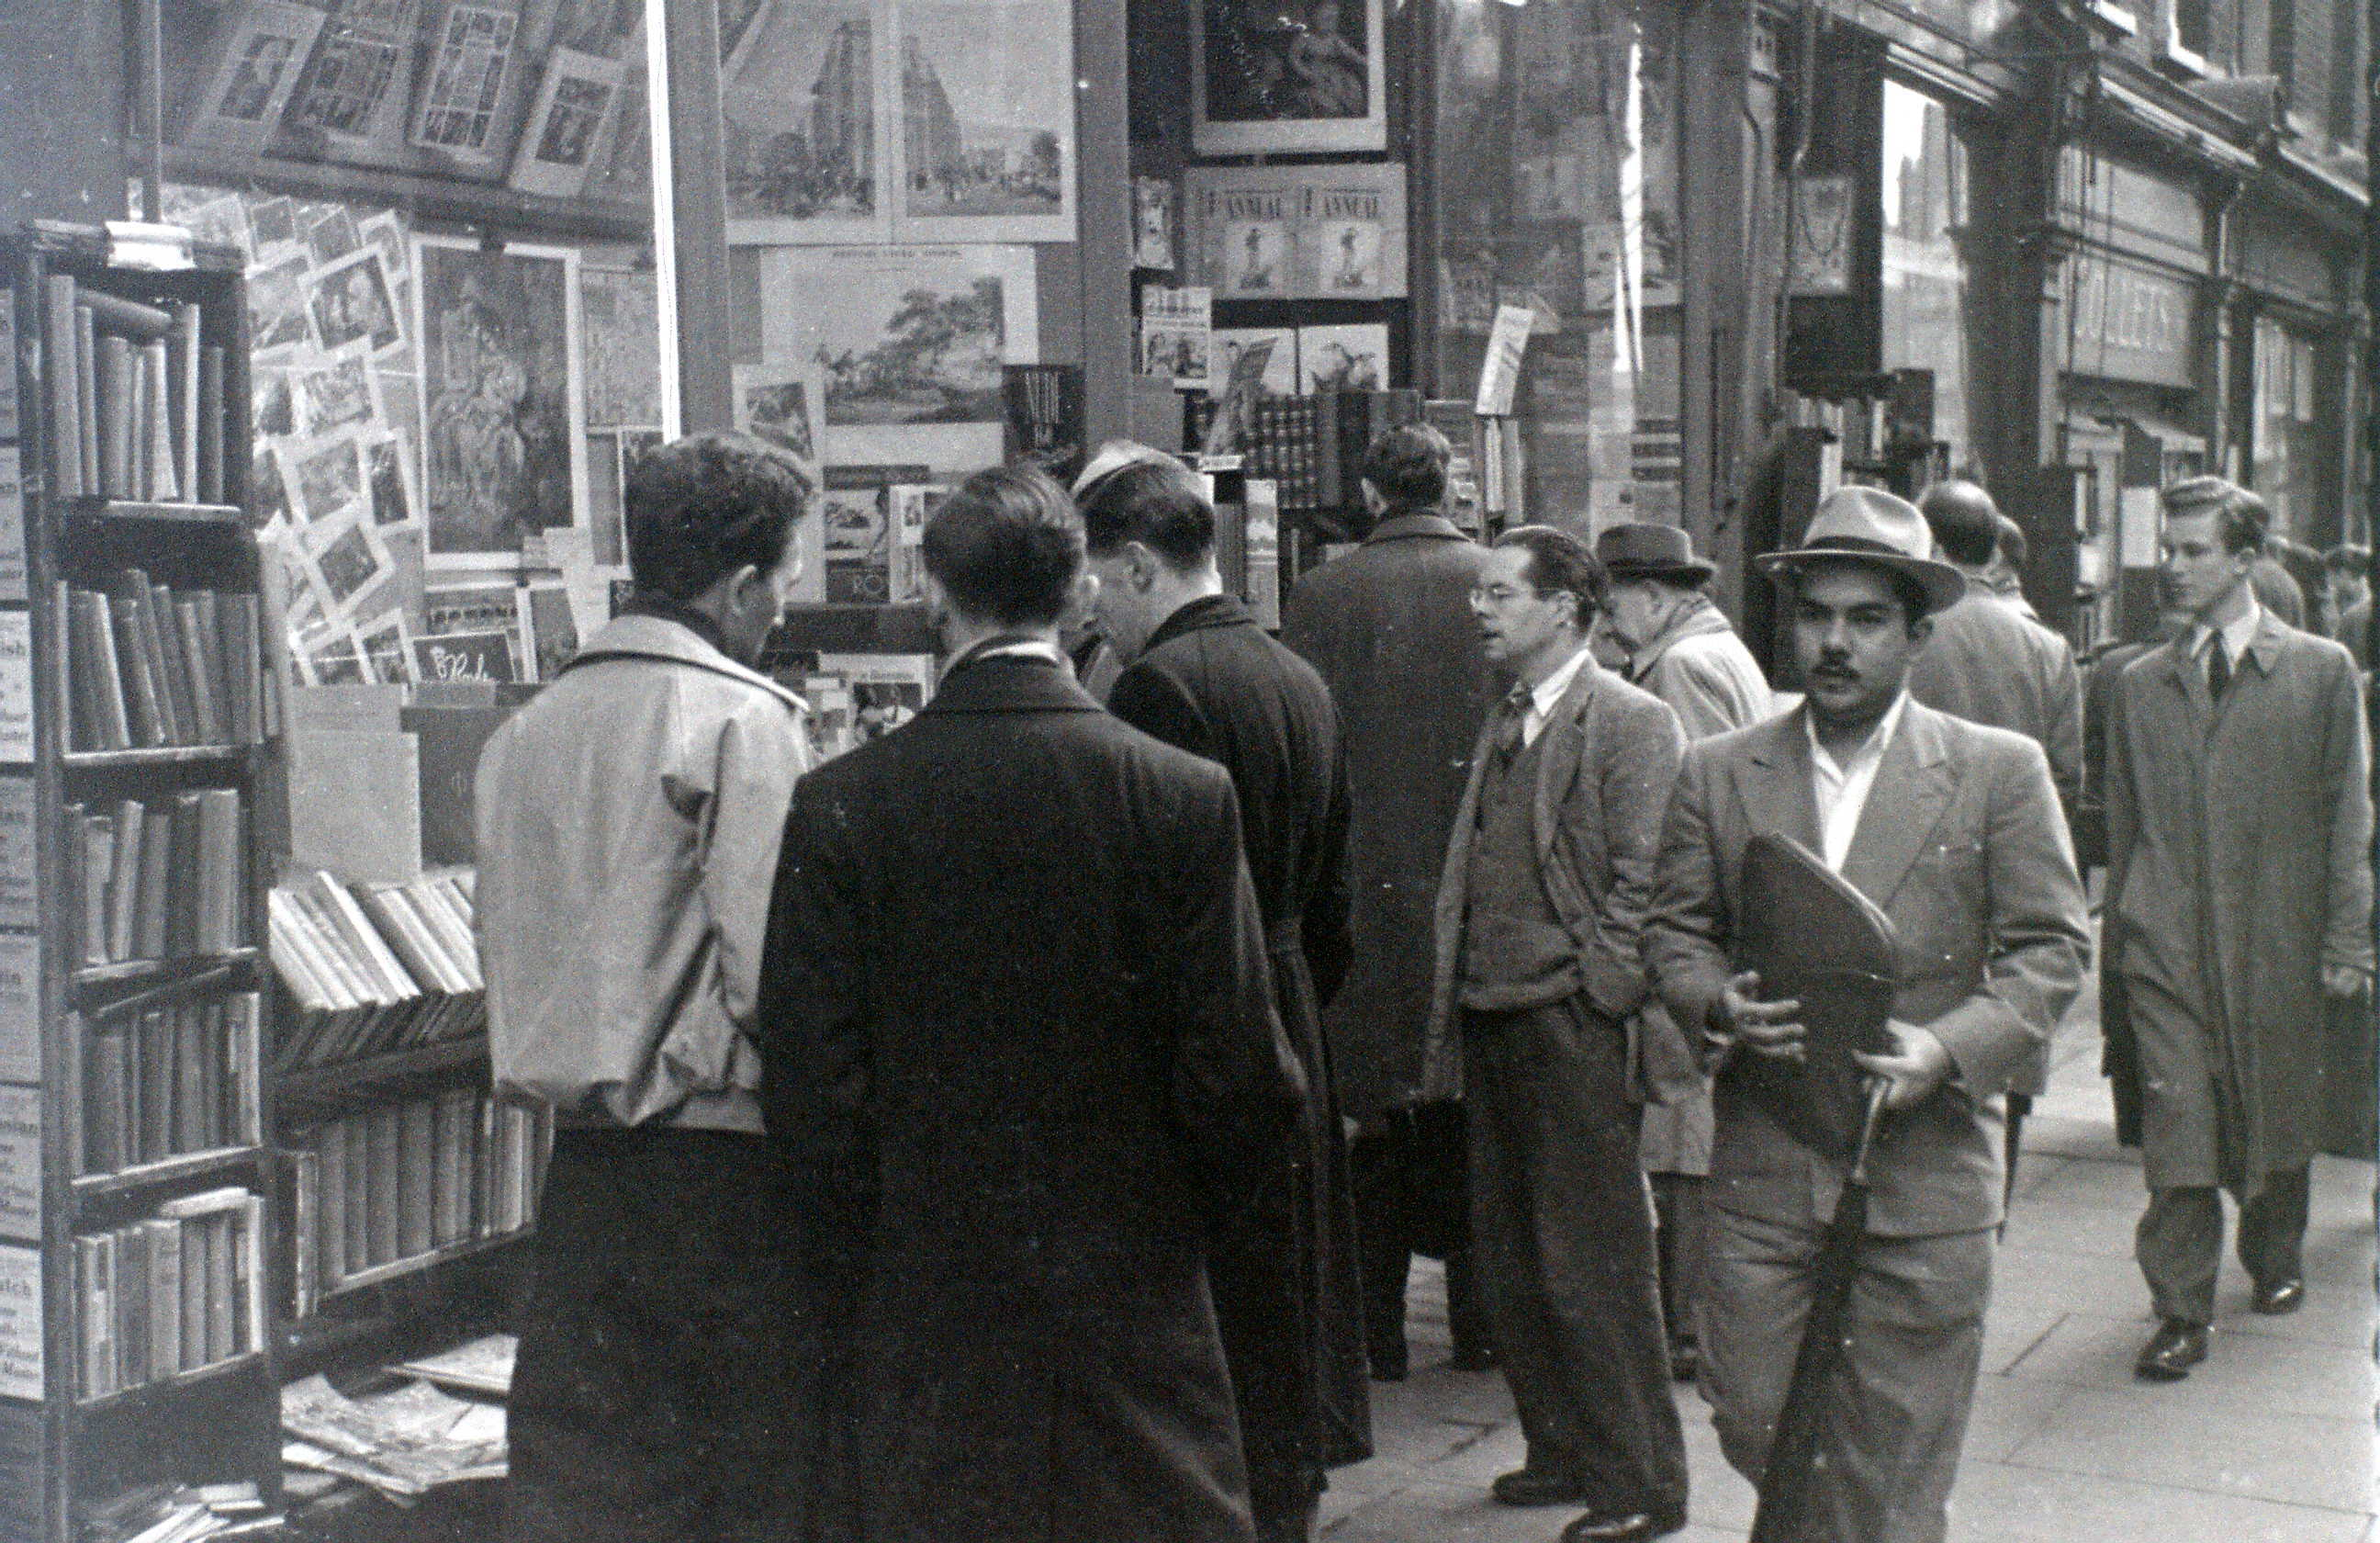 Men outside shop Charing Cross Road, London, 5 November 1955.